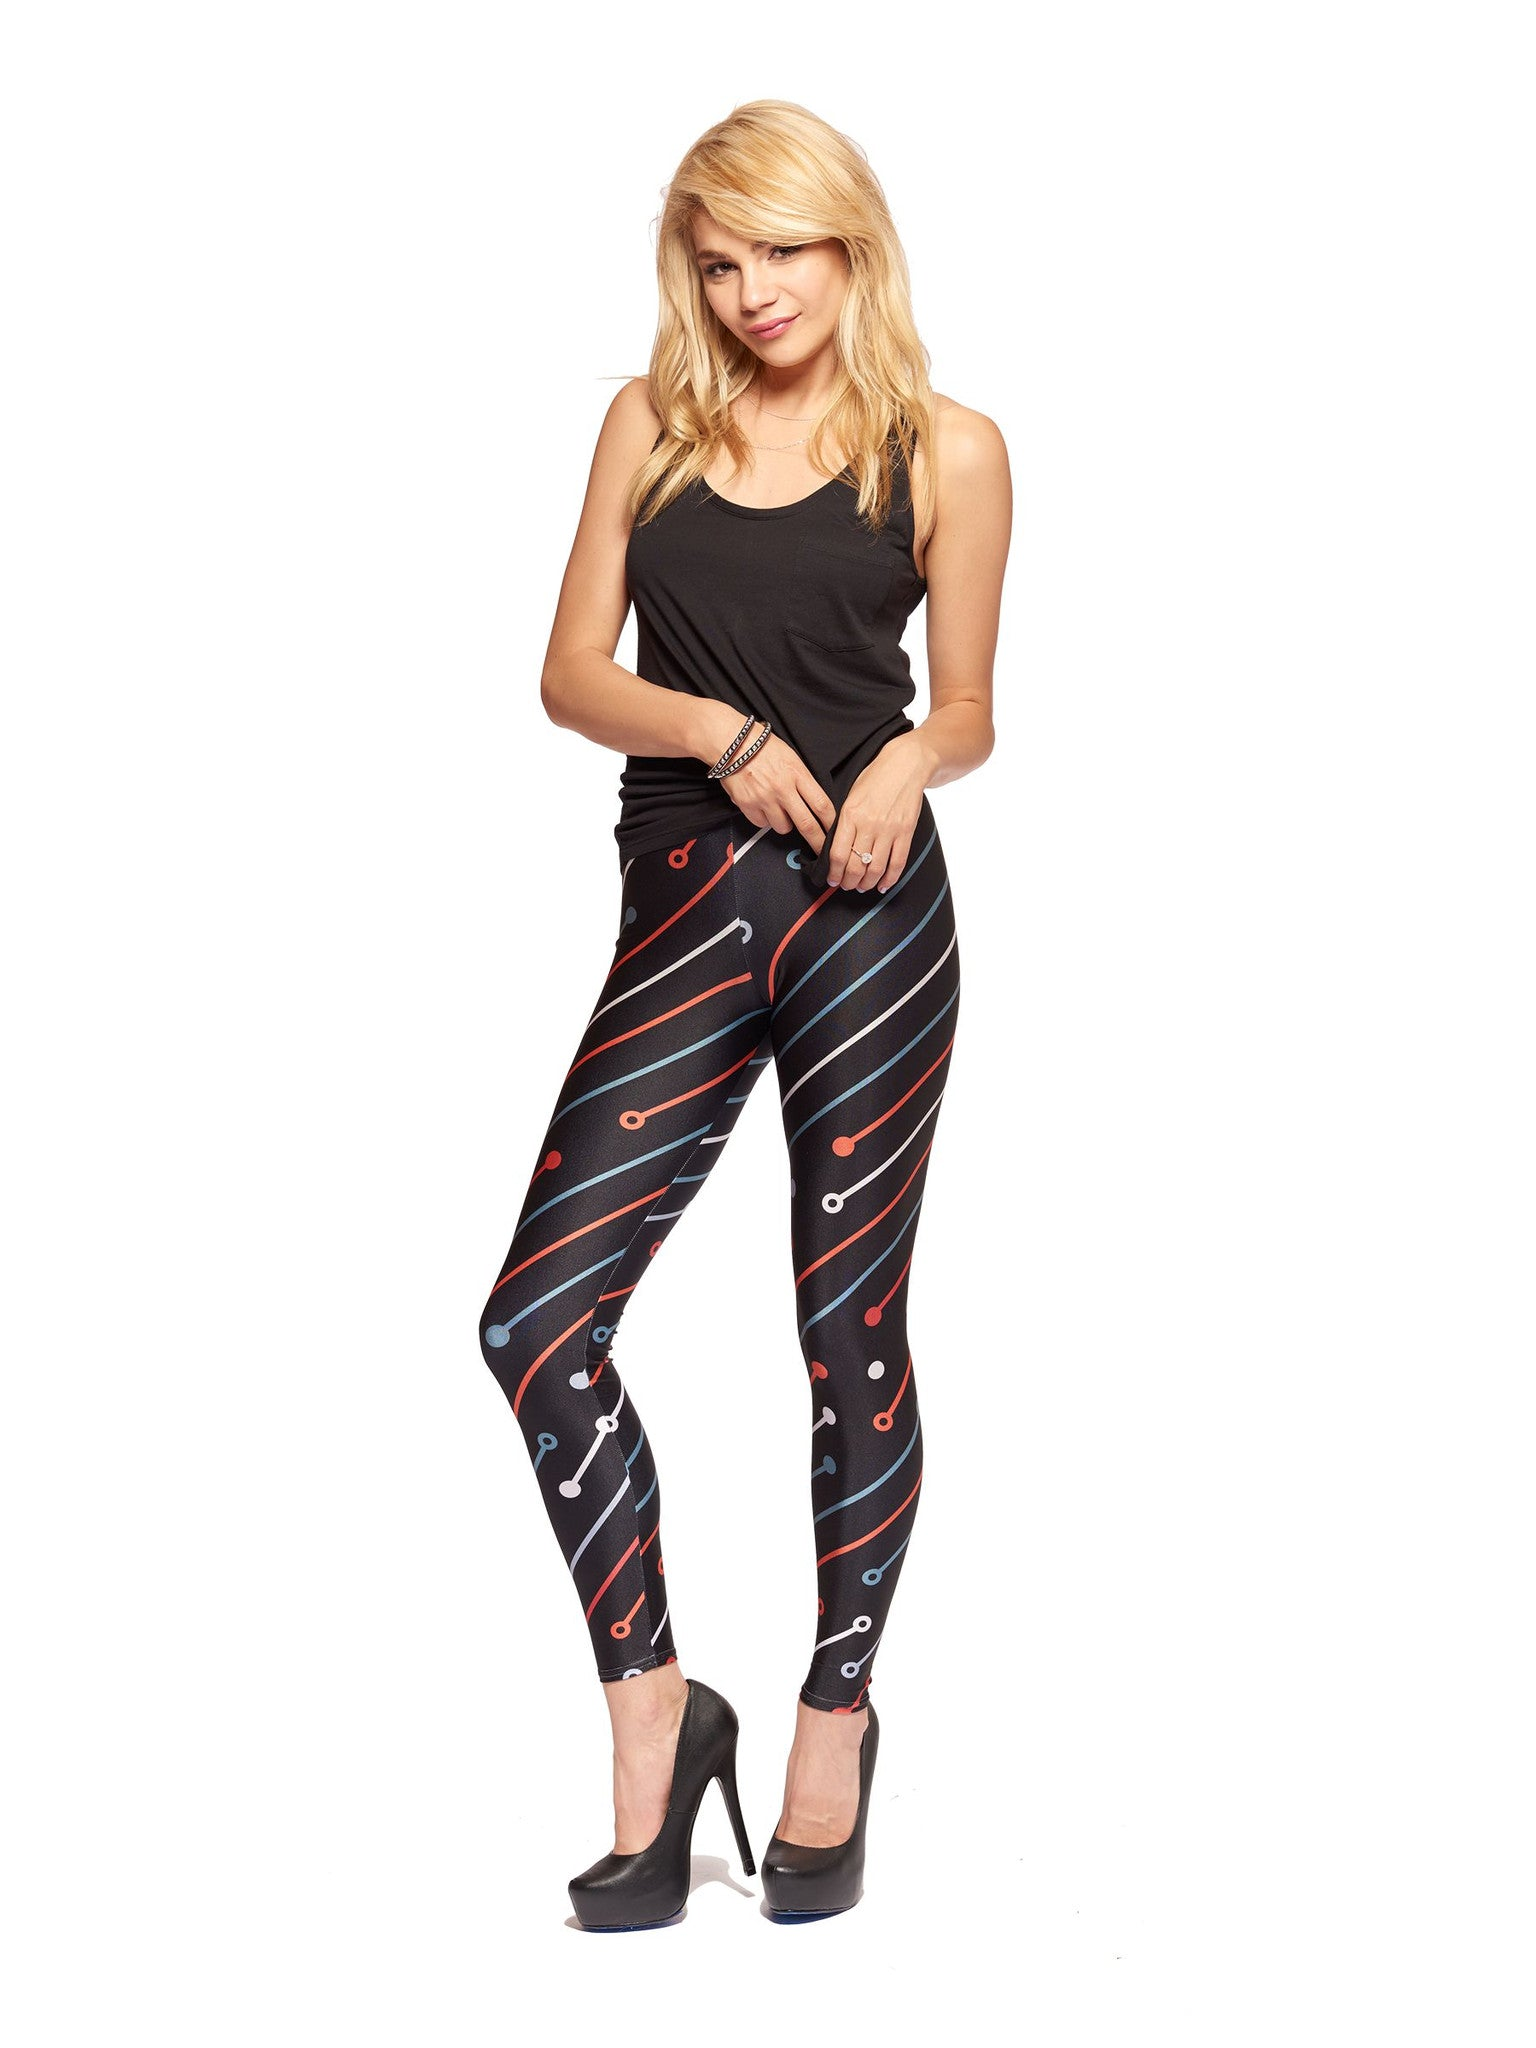 Circuitry Queen West Leggings - Nuvango  - 1